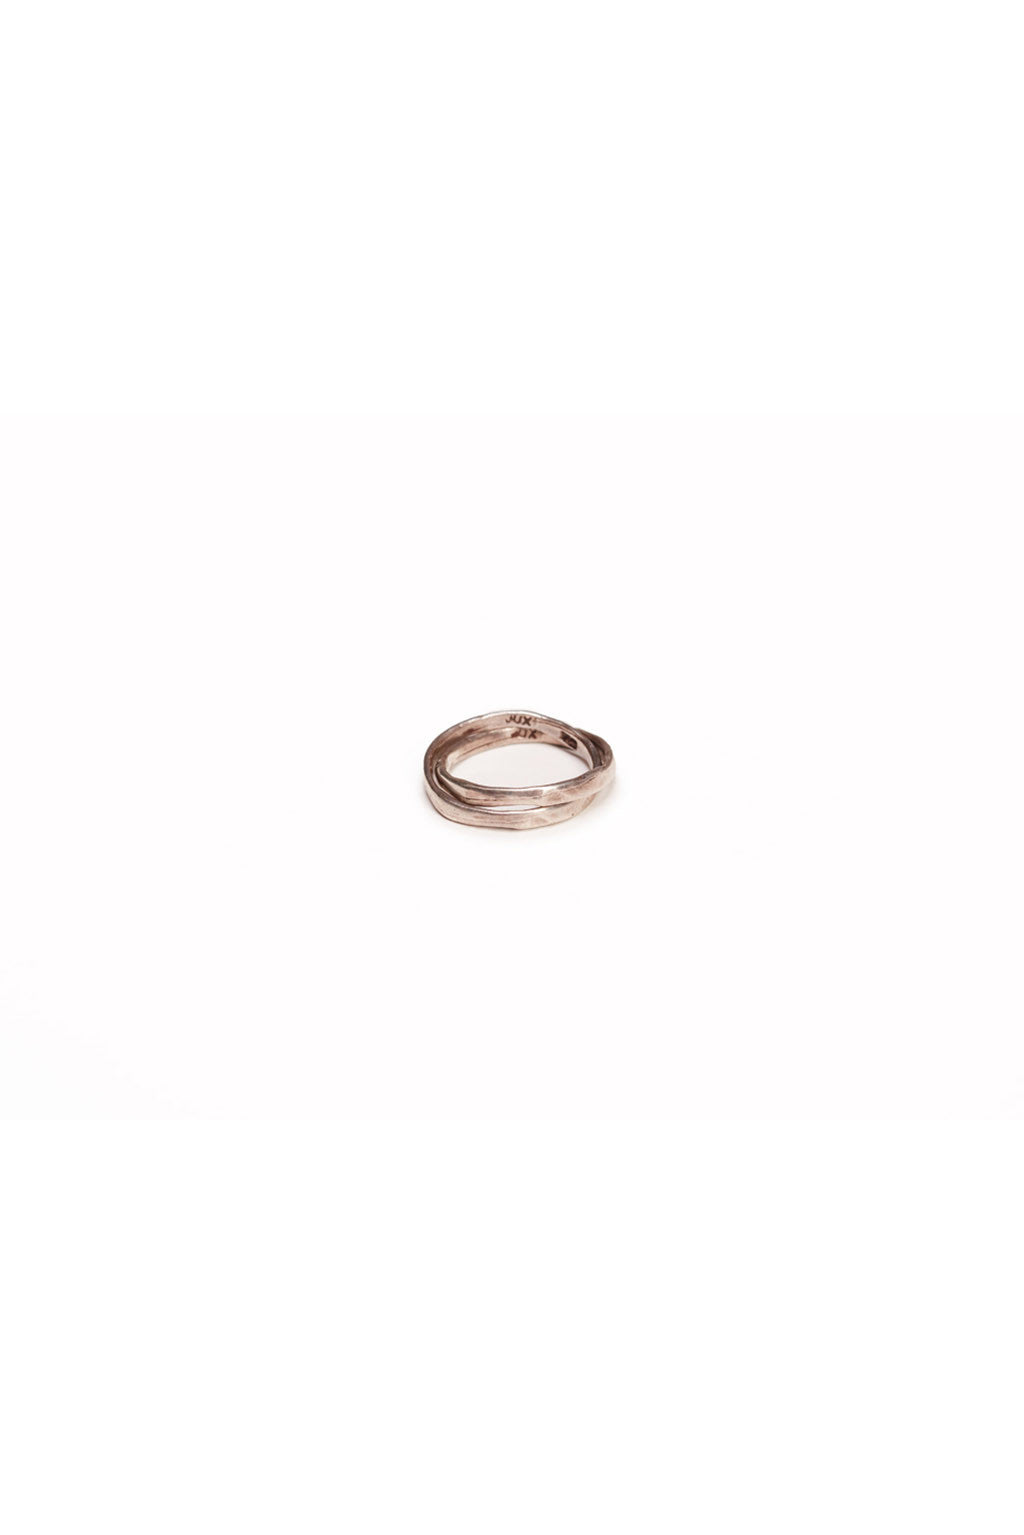 'DOUBLE UP' RING BY NEEDY X JUX